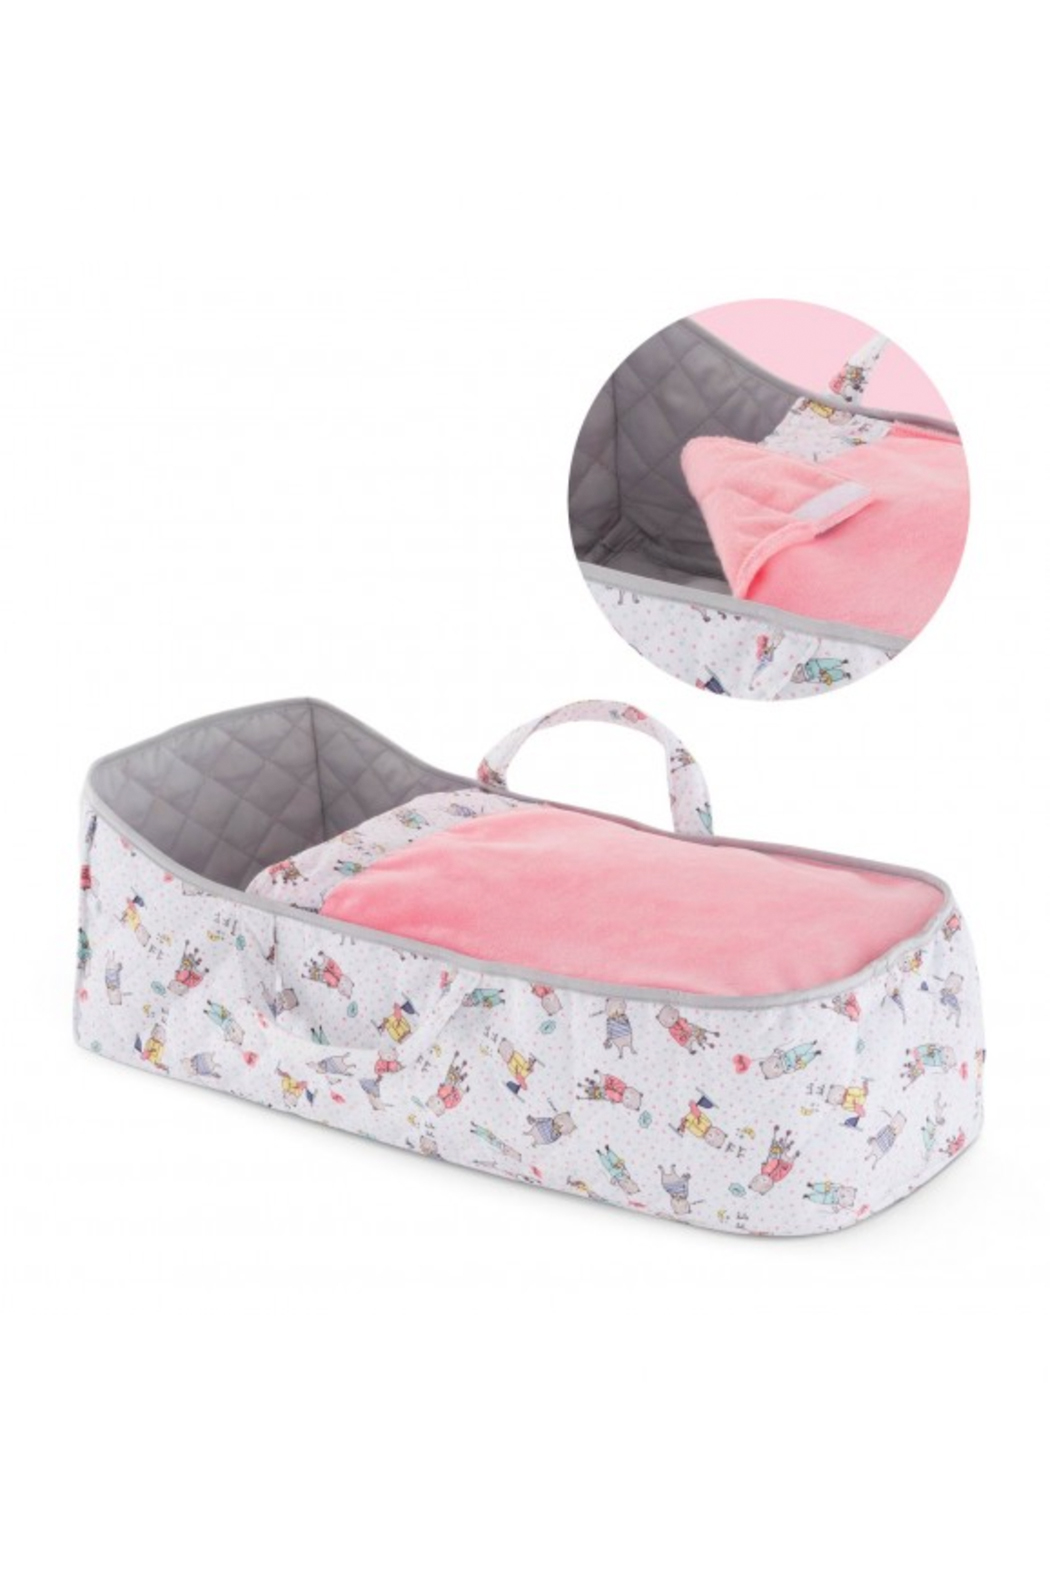 Corolle Carry Bed For Large Baby Dolls - Main Image